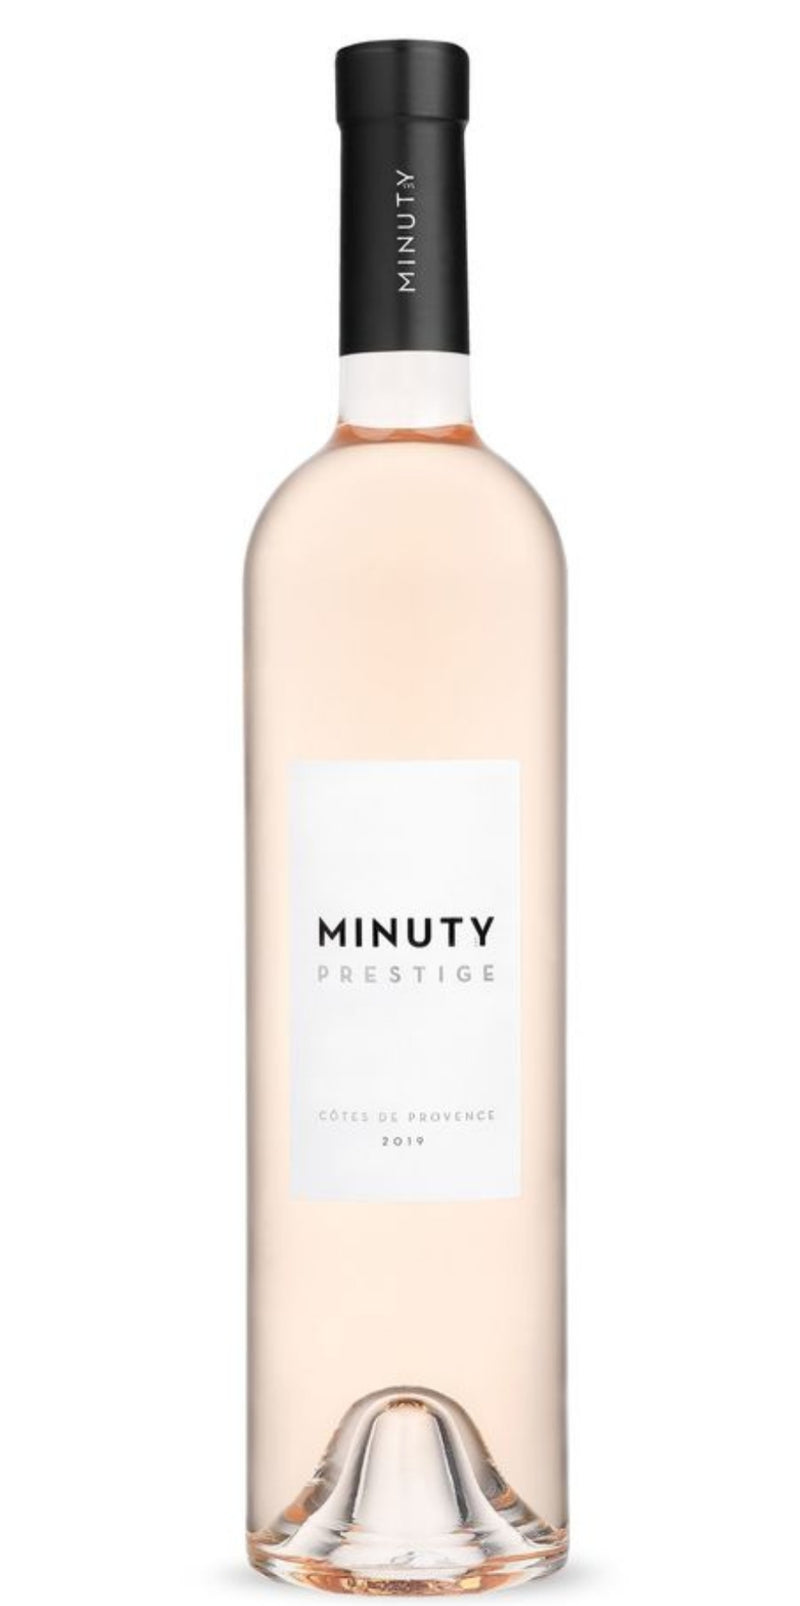 Minuty prestige available to by online